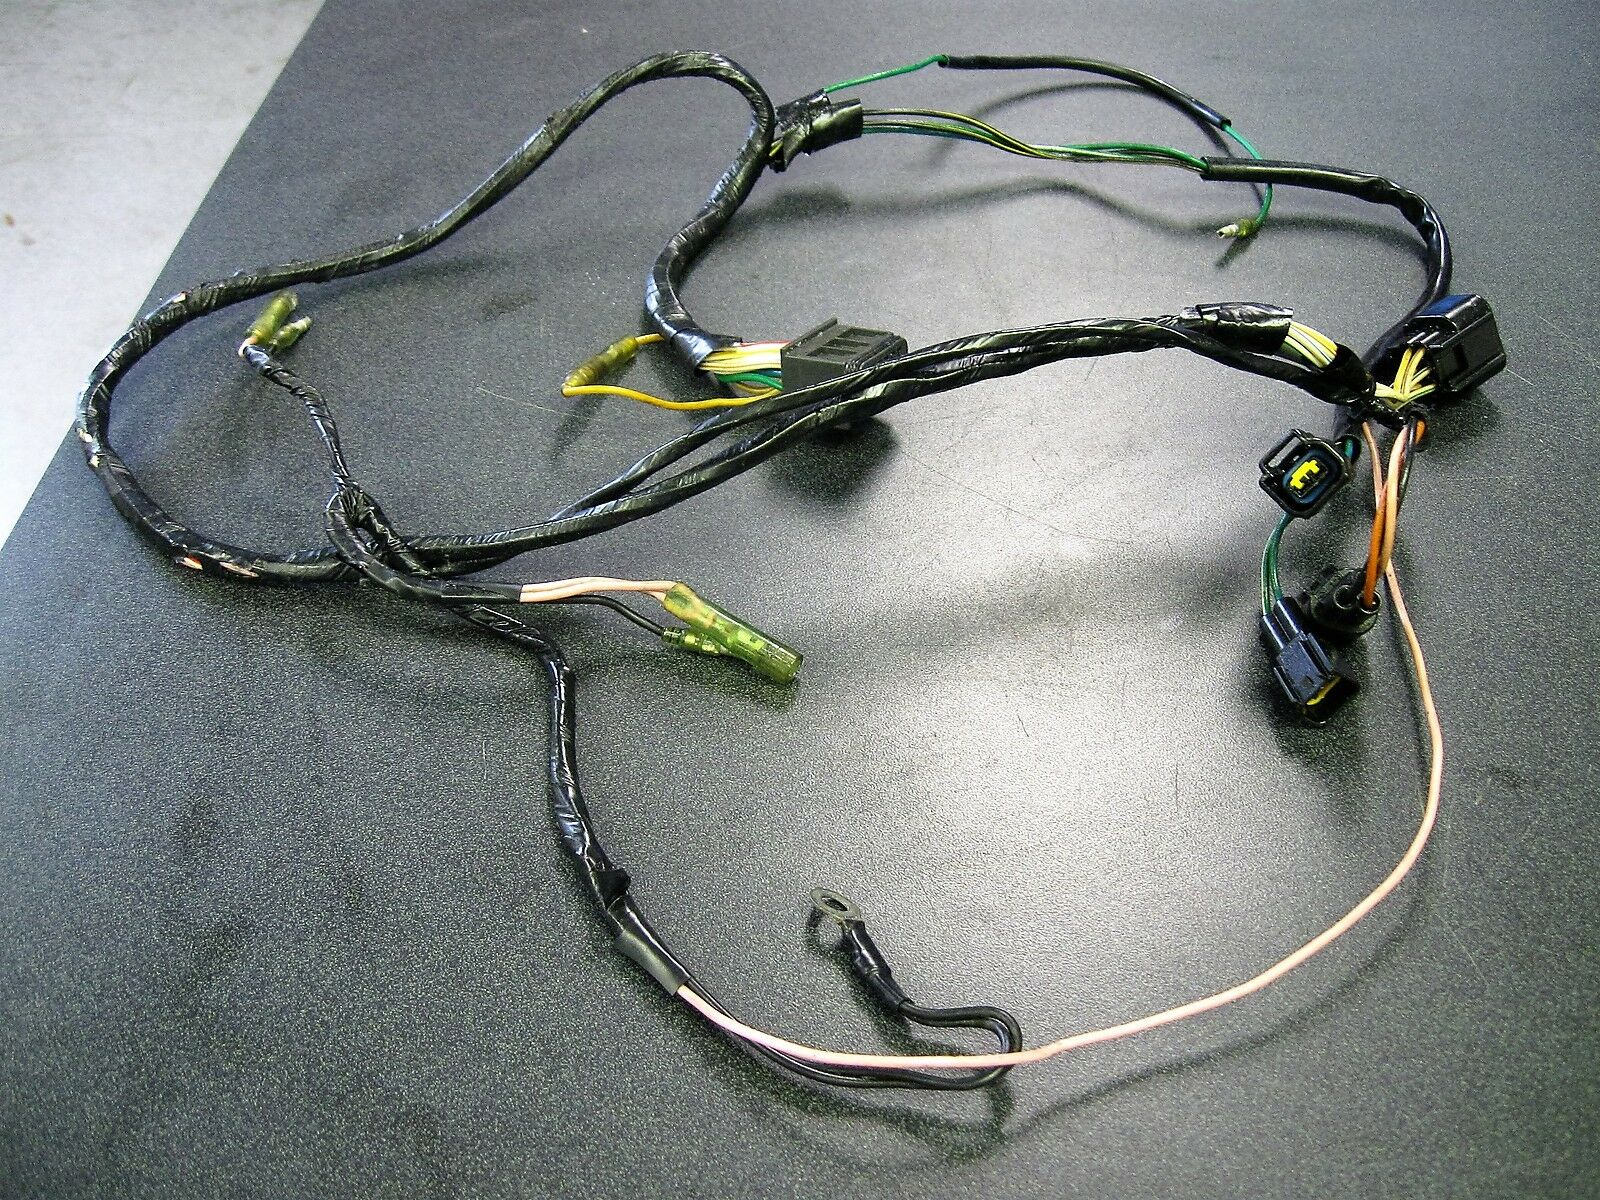 Yamaha Outboard Sx225 Wire Harness Assy 2 65l 8259m 00 17000 Wiring 1 Of 9only Available